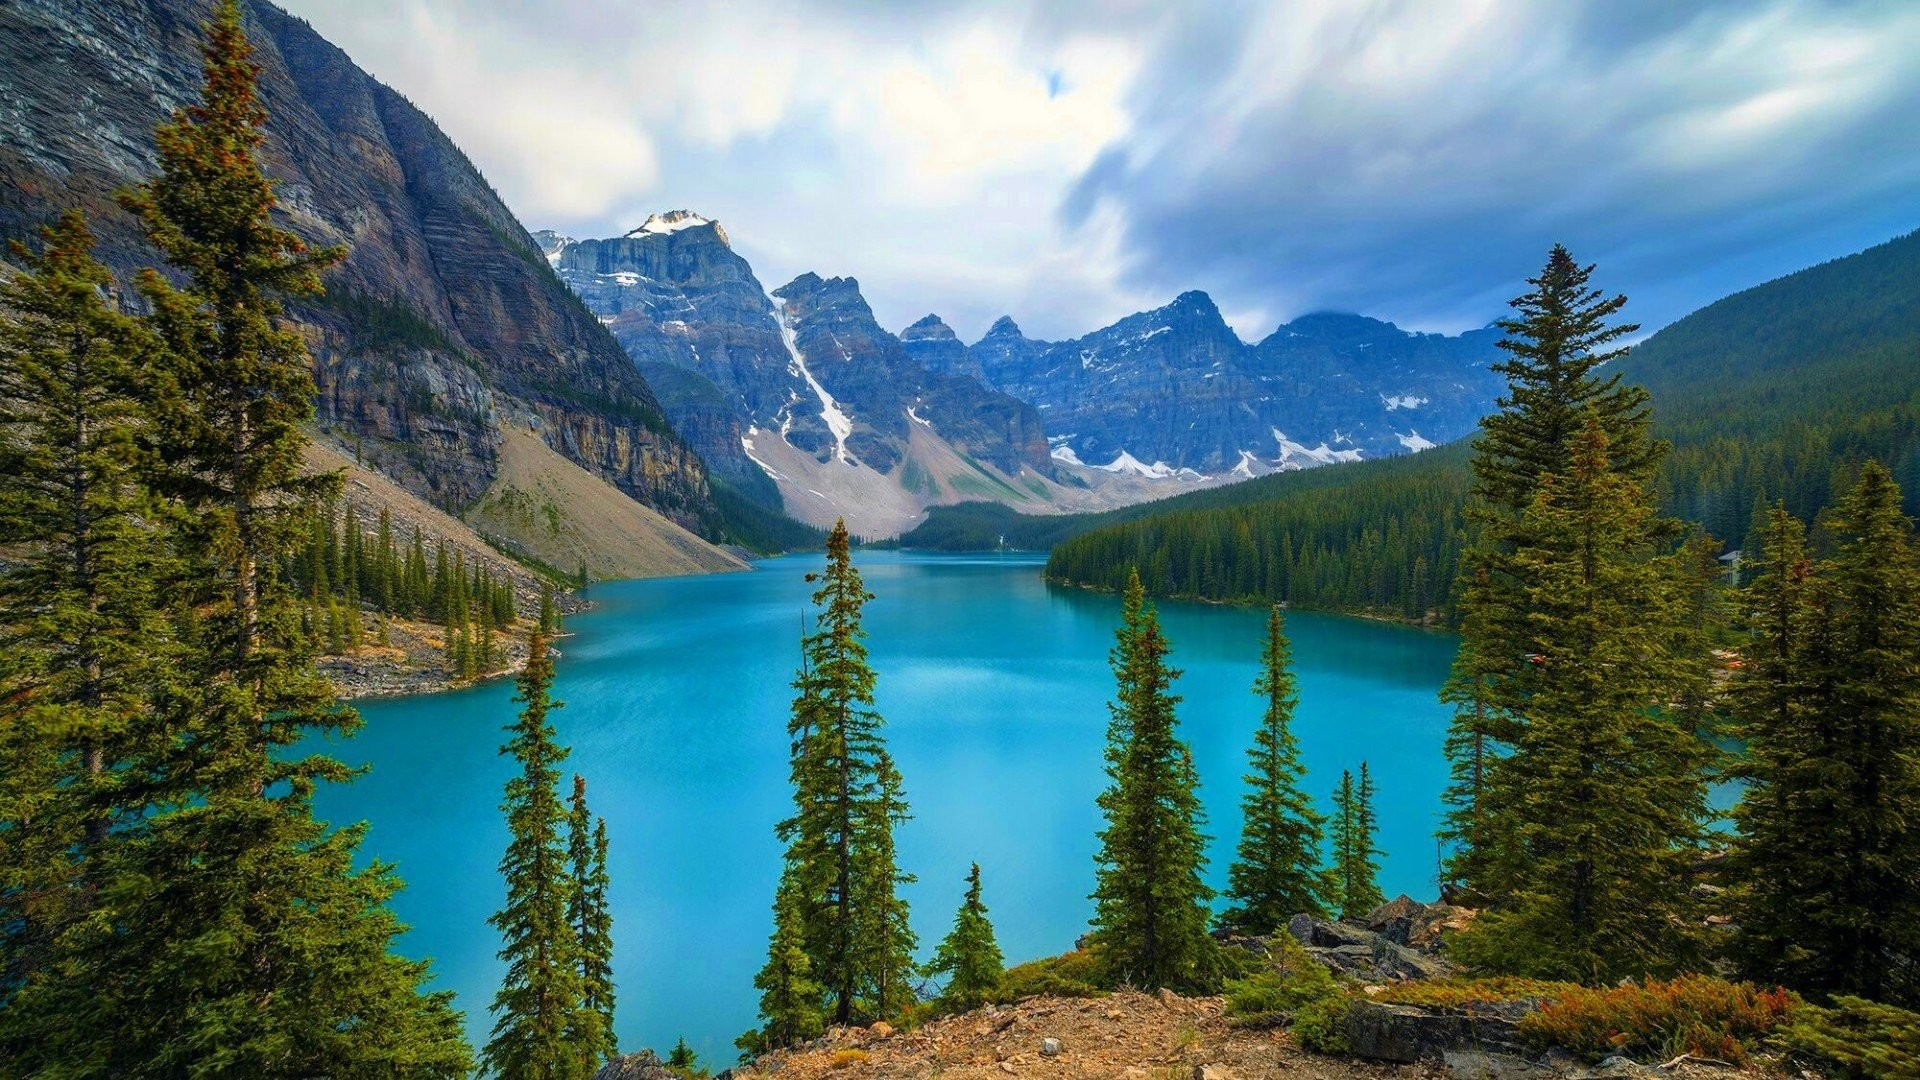 Full Hd For Backgrounds Lakes National Moraine Park Banff Animated